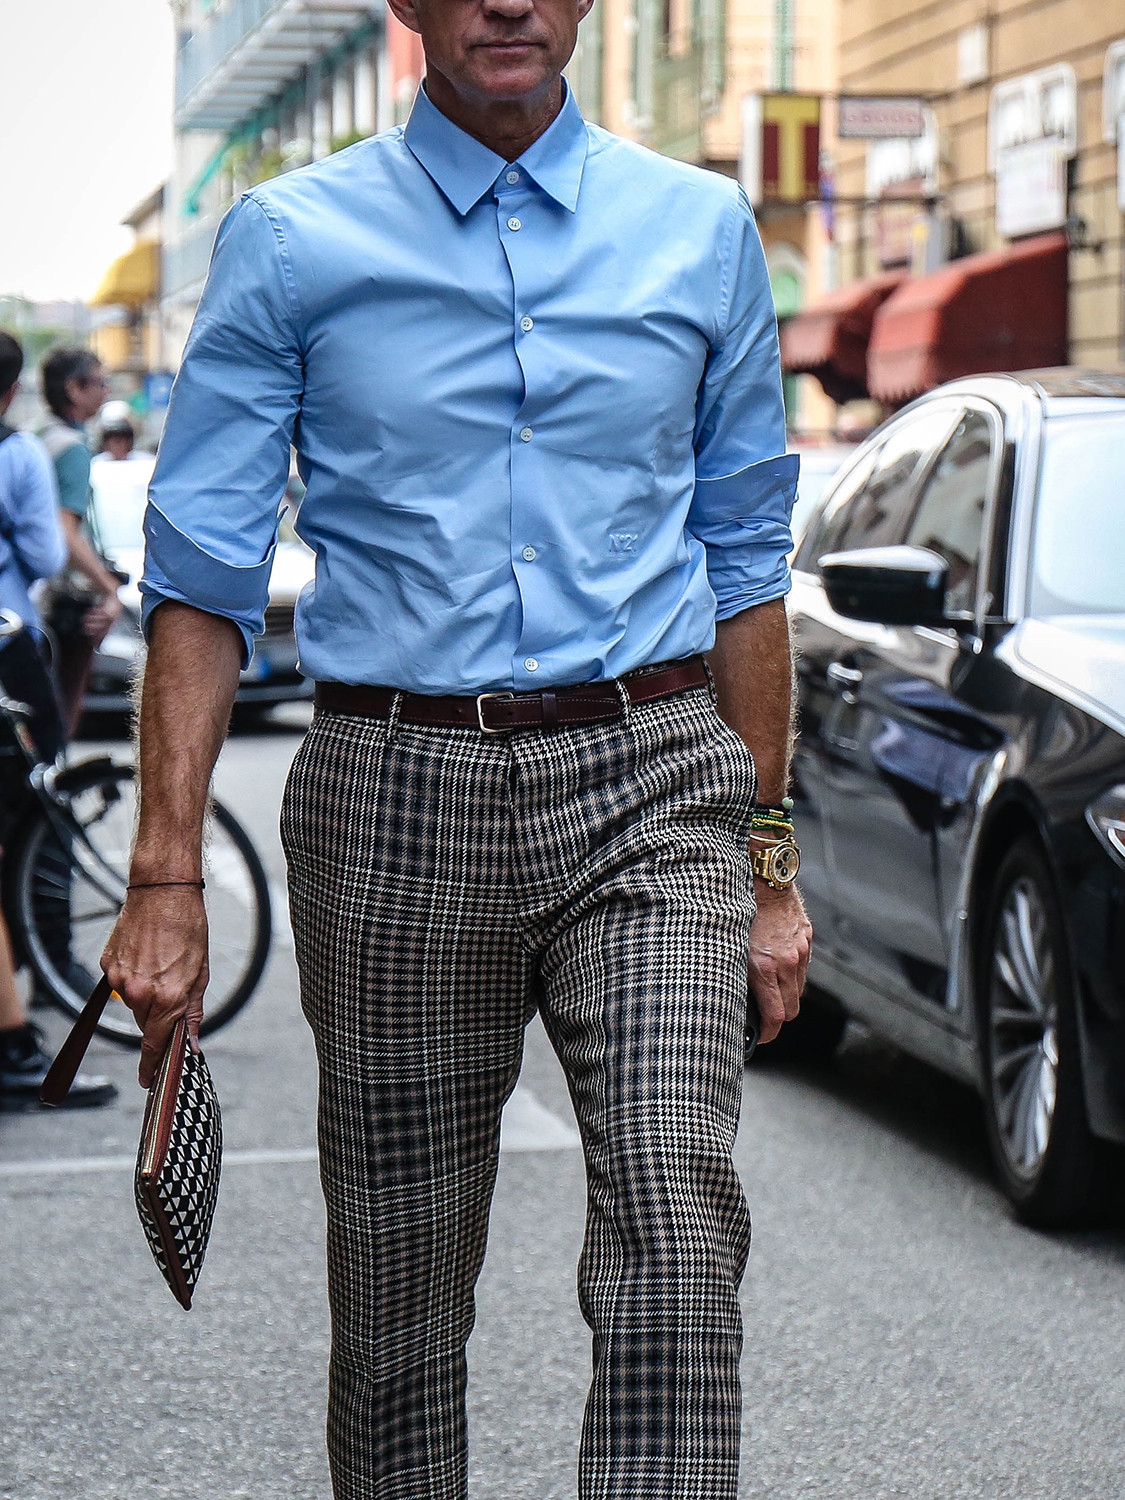 Men's outfit idea for 2021 with blue formal shirt, brown casual belt, loafers. Suitable for spring and autumn.